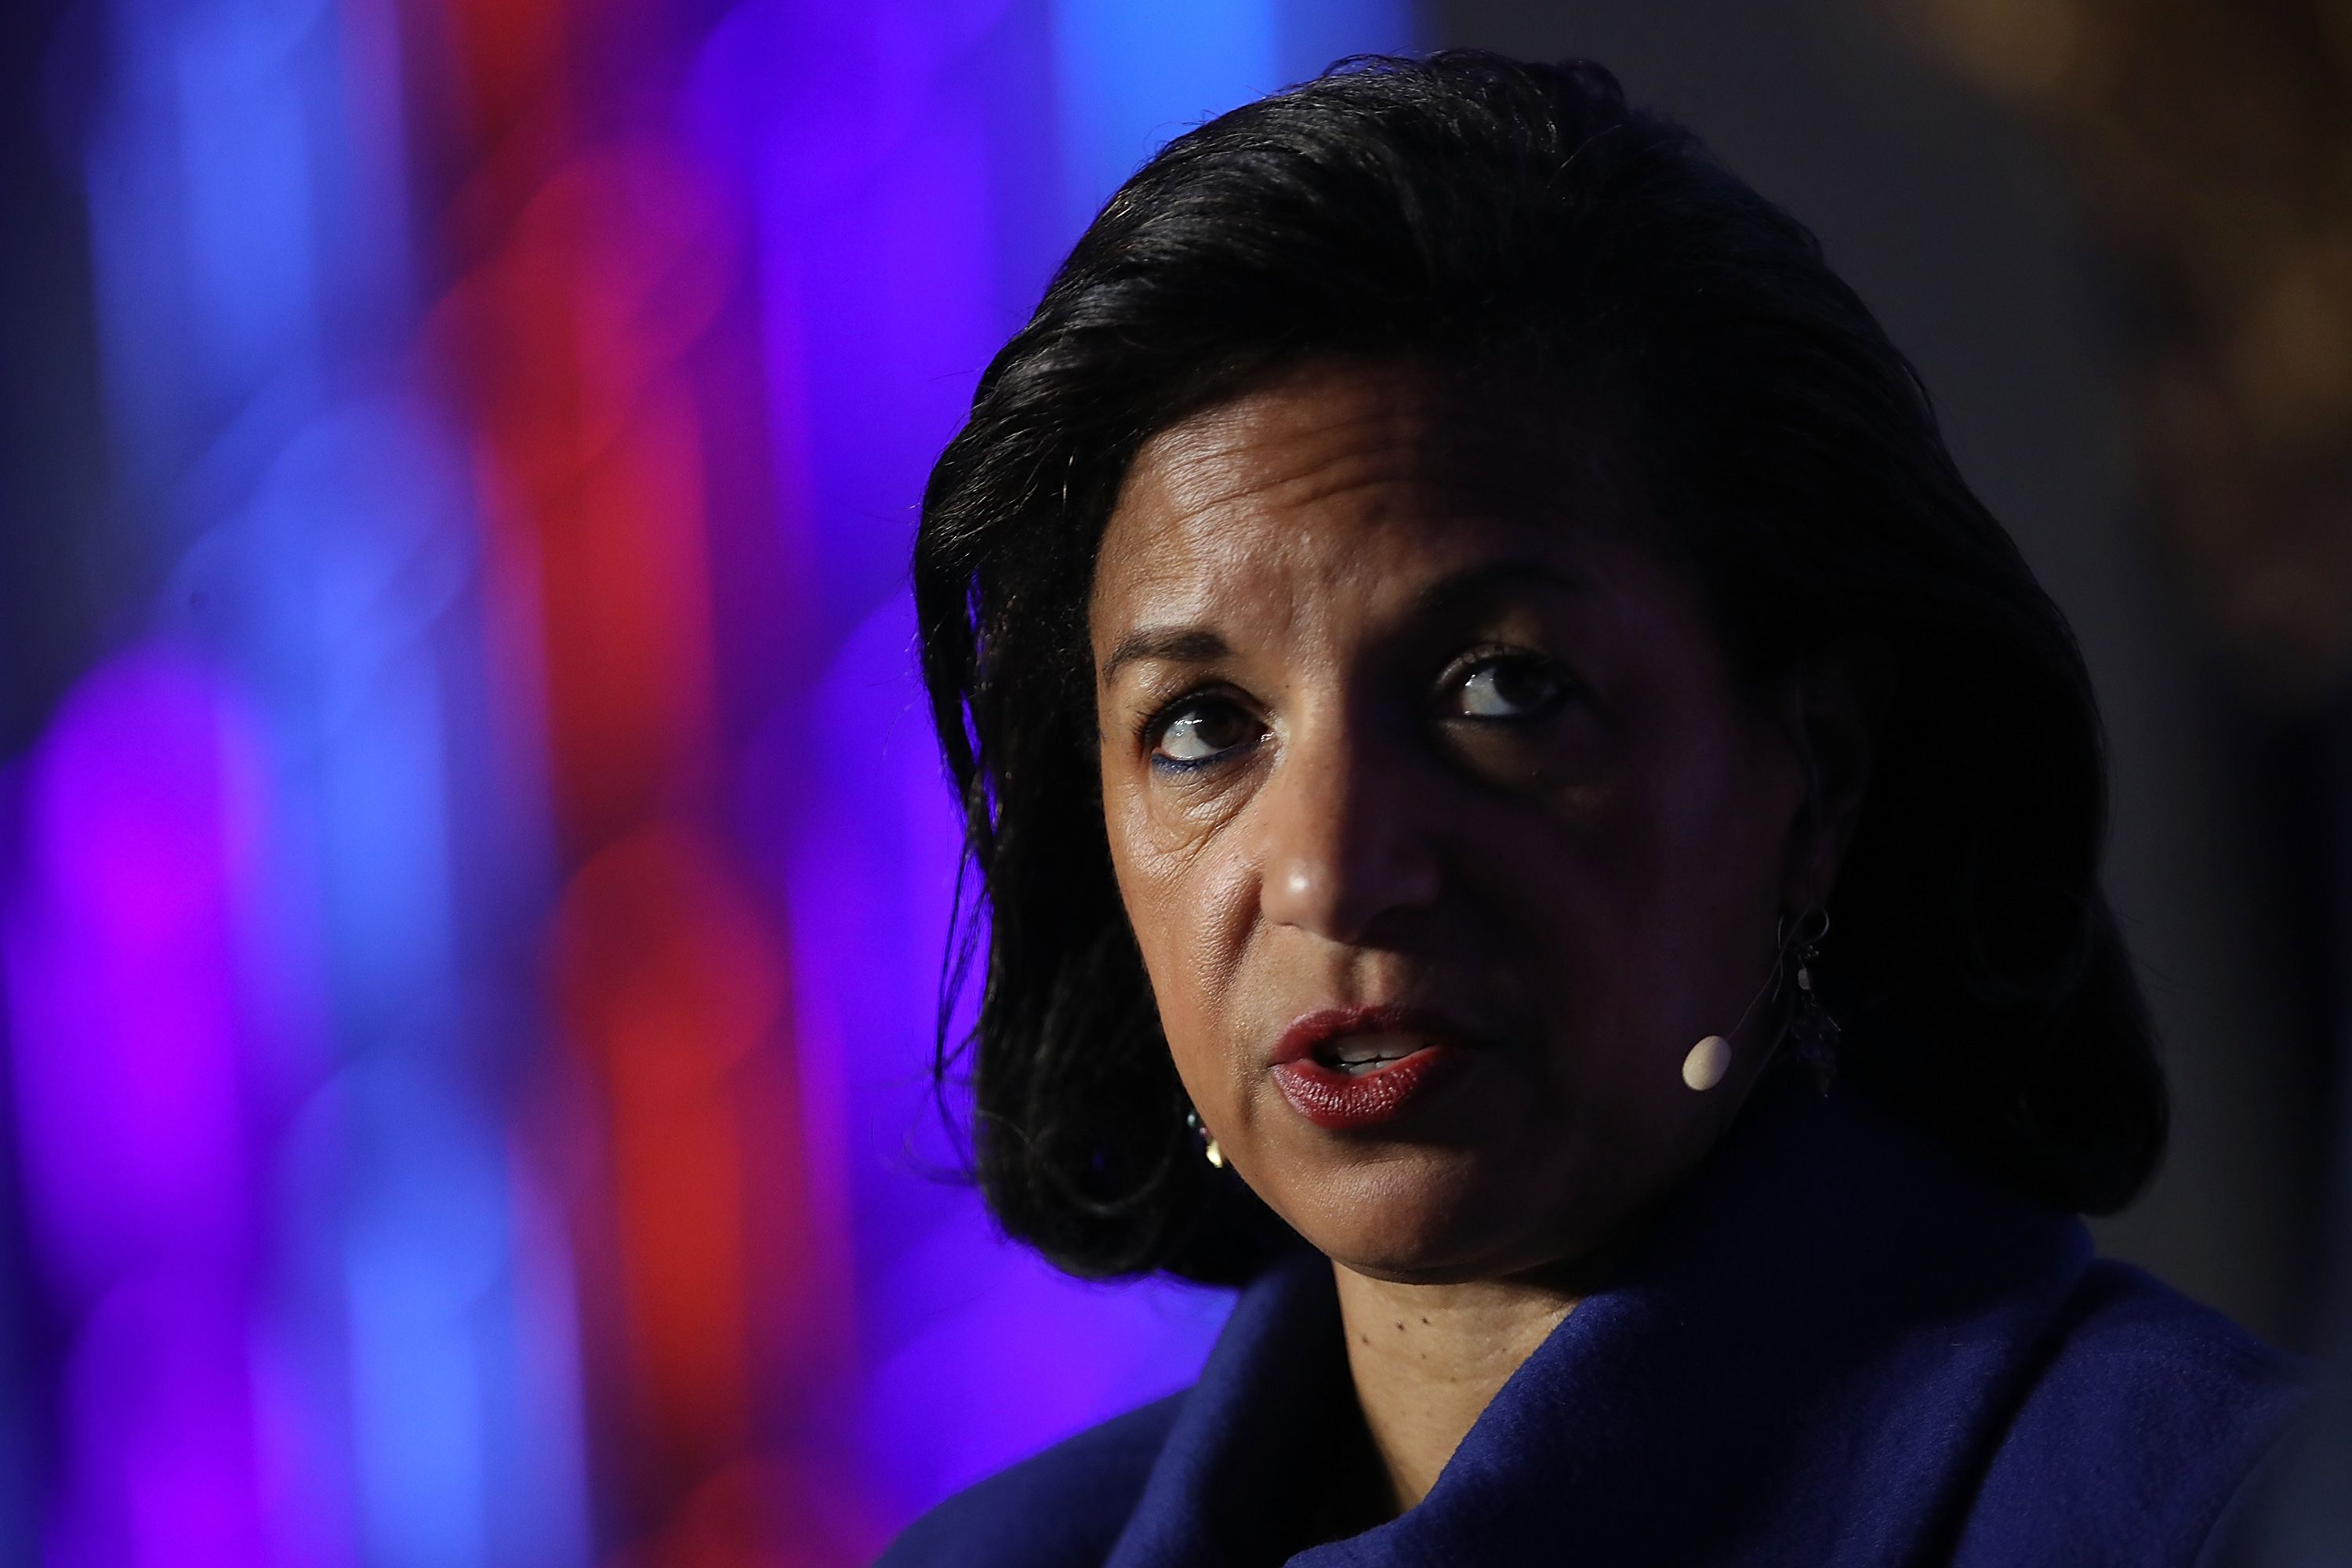 """Susan Rice tears into Trump over """"despicable lies"""" on Obama and Iran - Axios"""